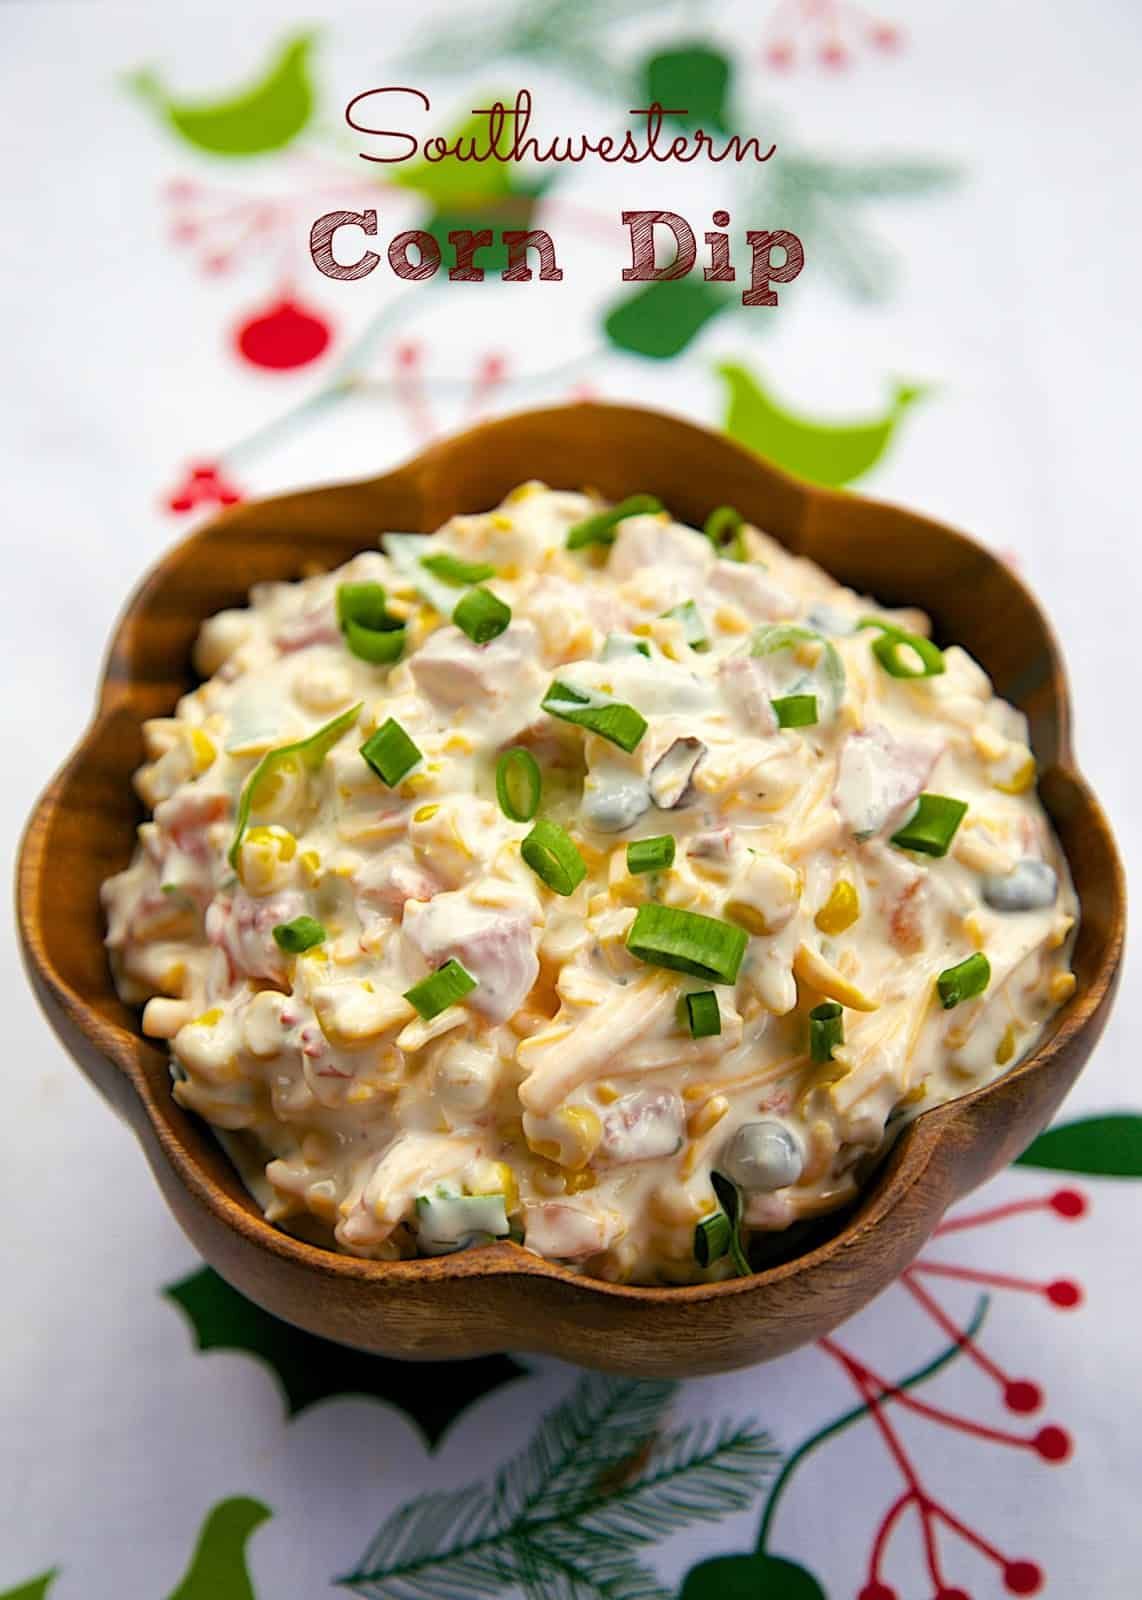 Southwestern Corn Dip - southwestern corn, mayo, sour cream, Rotel, green onions, cheese - quick & delicious dip! People go CRAZY over this easy dip recipe! It is my most requested dip recipe! I can't go to a party without bringing this Mexican dip! Make it ASAP! It is SO good!!